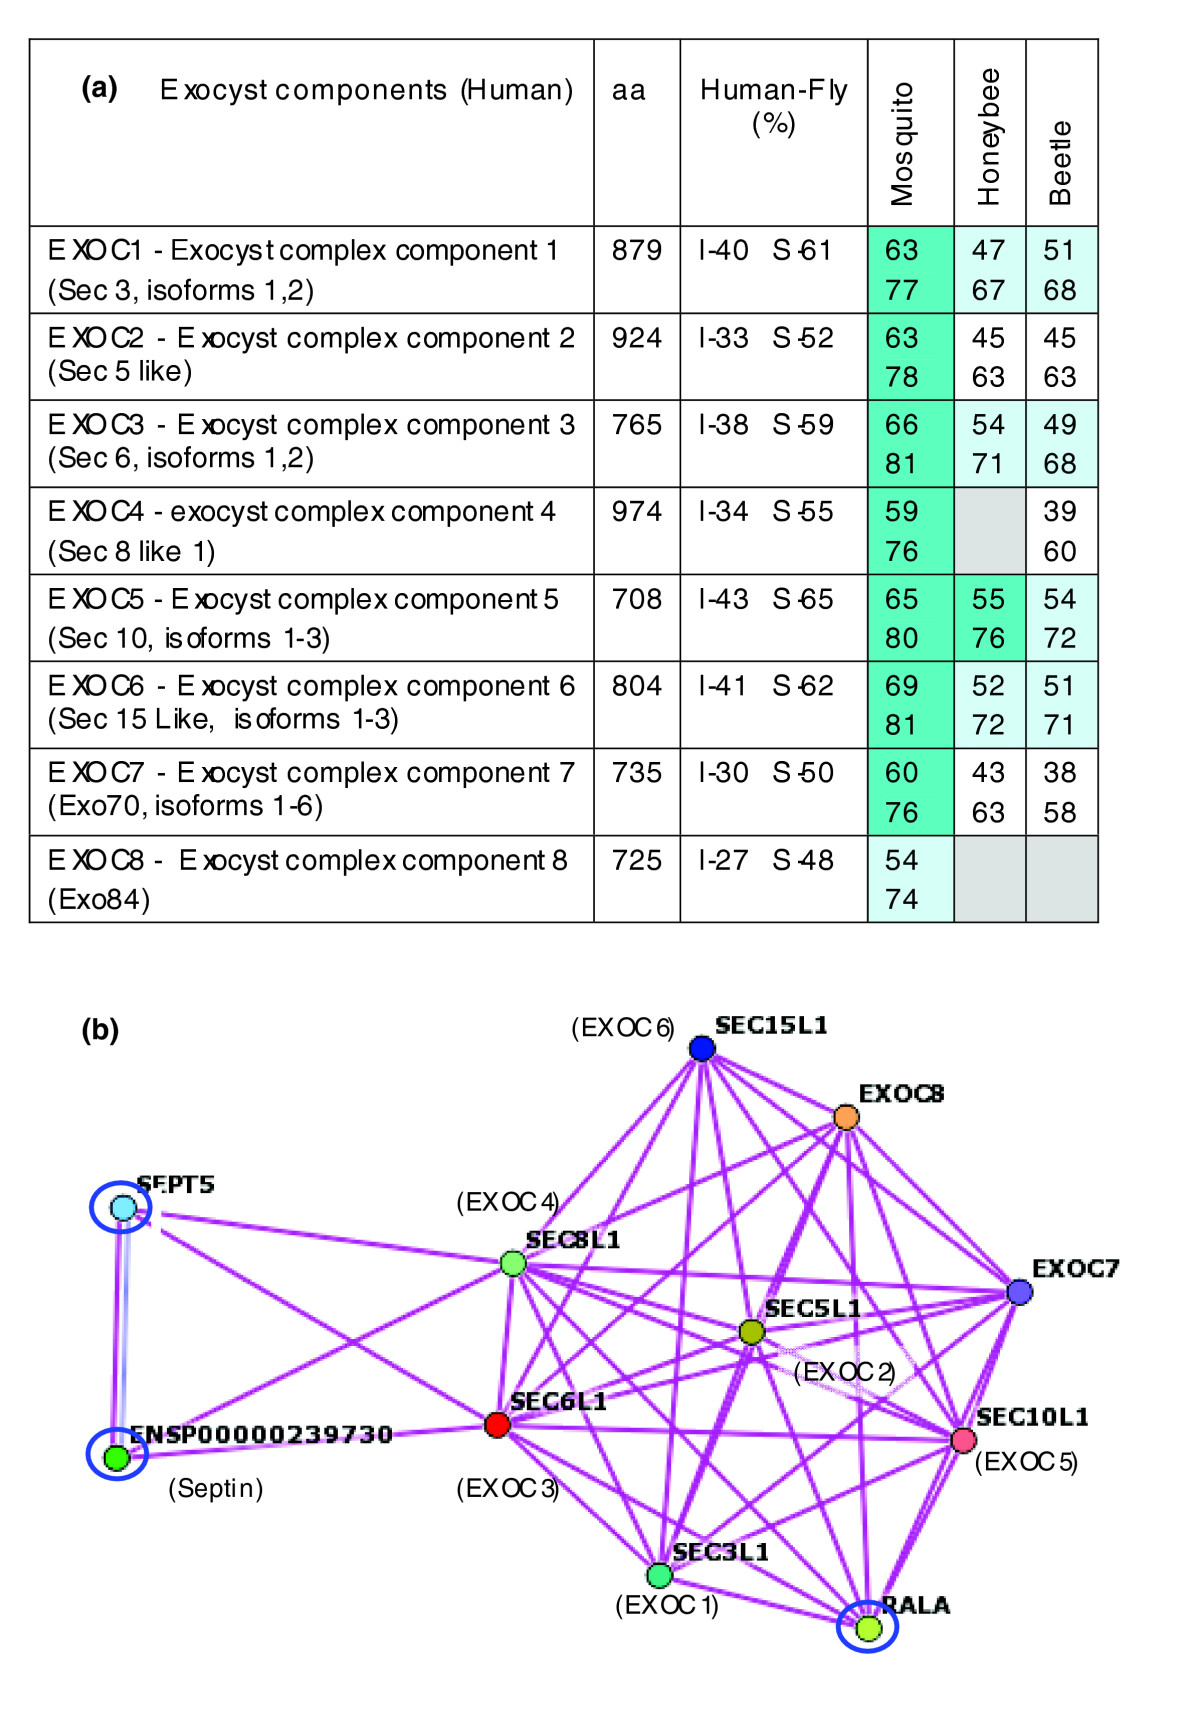 https://static-content.springer.com/image/art%3A10.1186%2Fgb-2008-9-2-r27/MediaObjects/13059_2007_Article_1889_Fig2_HTML.jpg